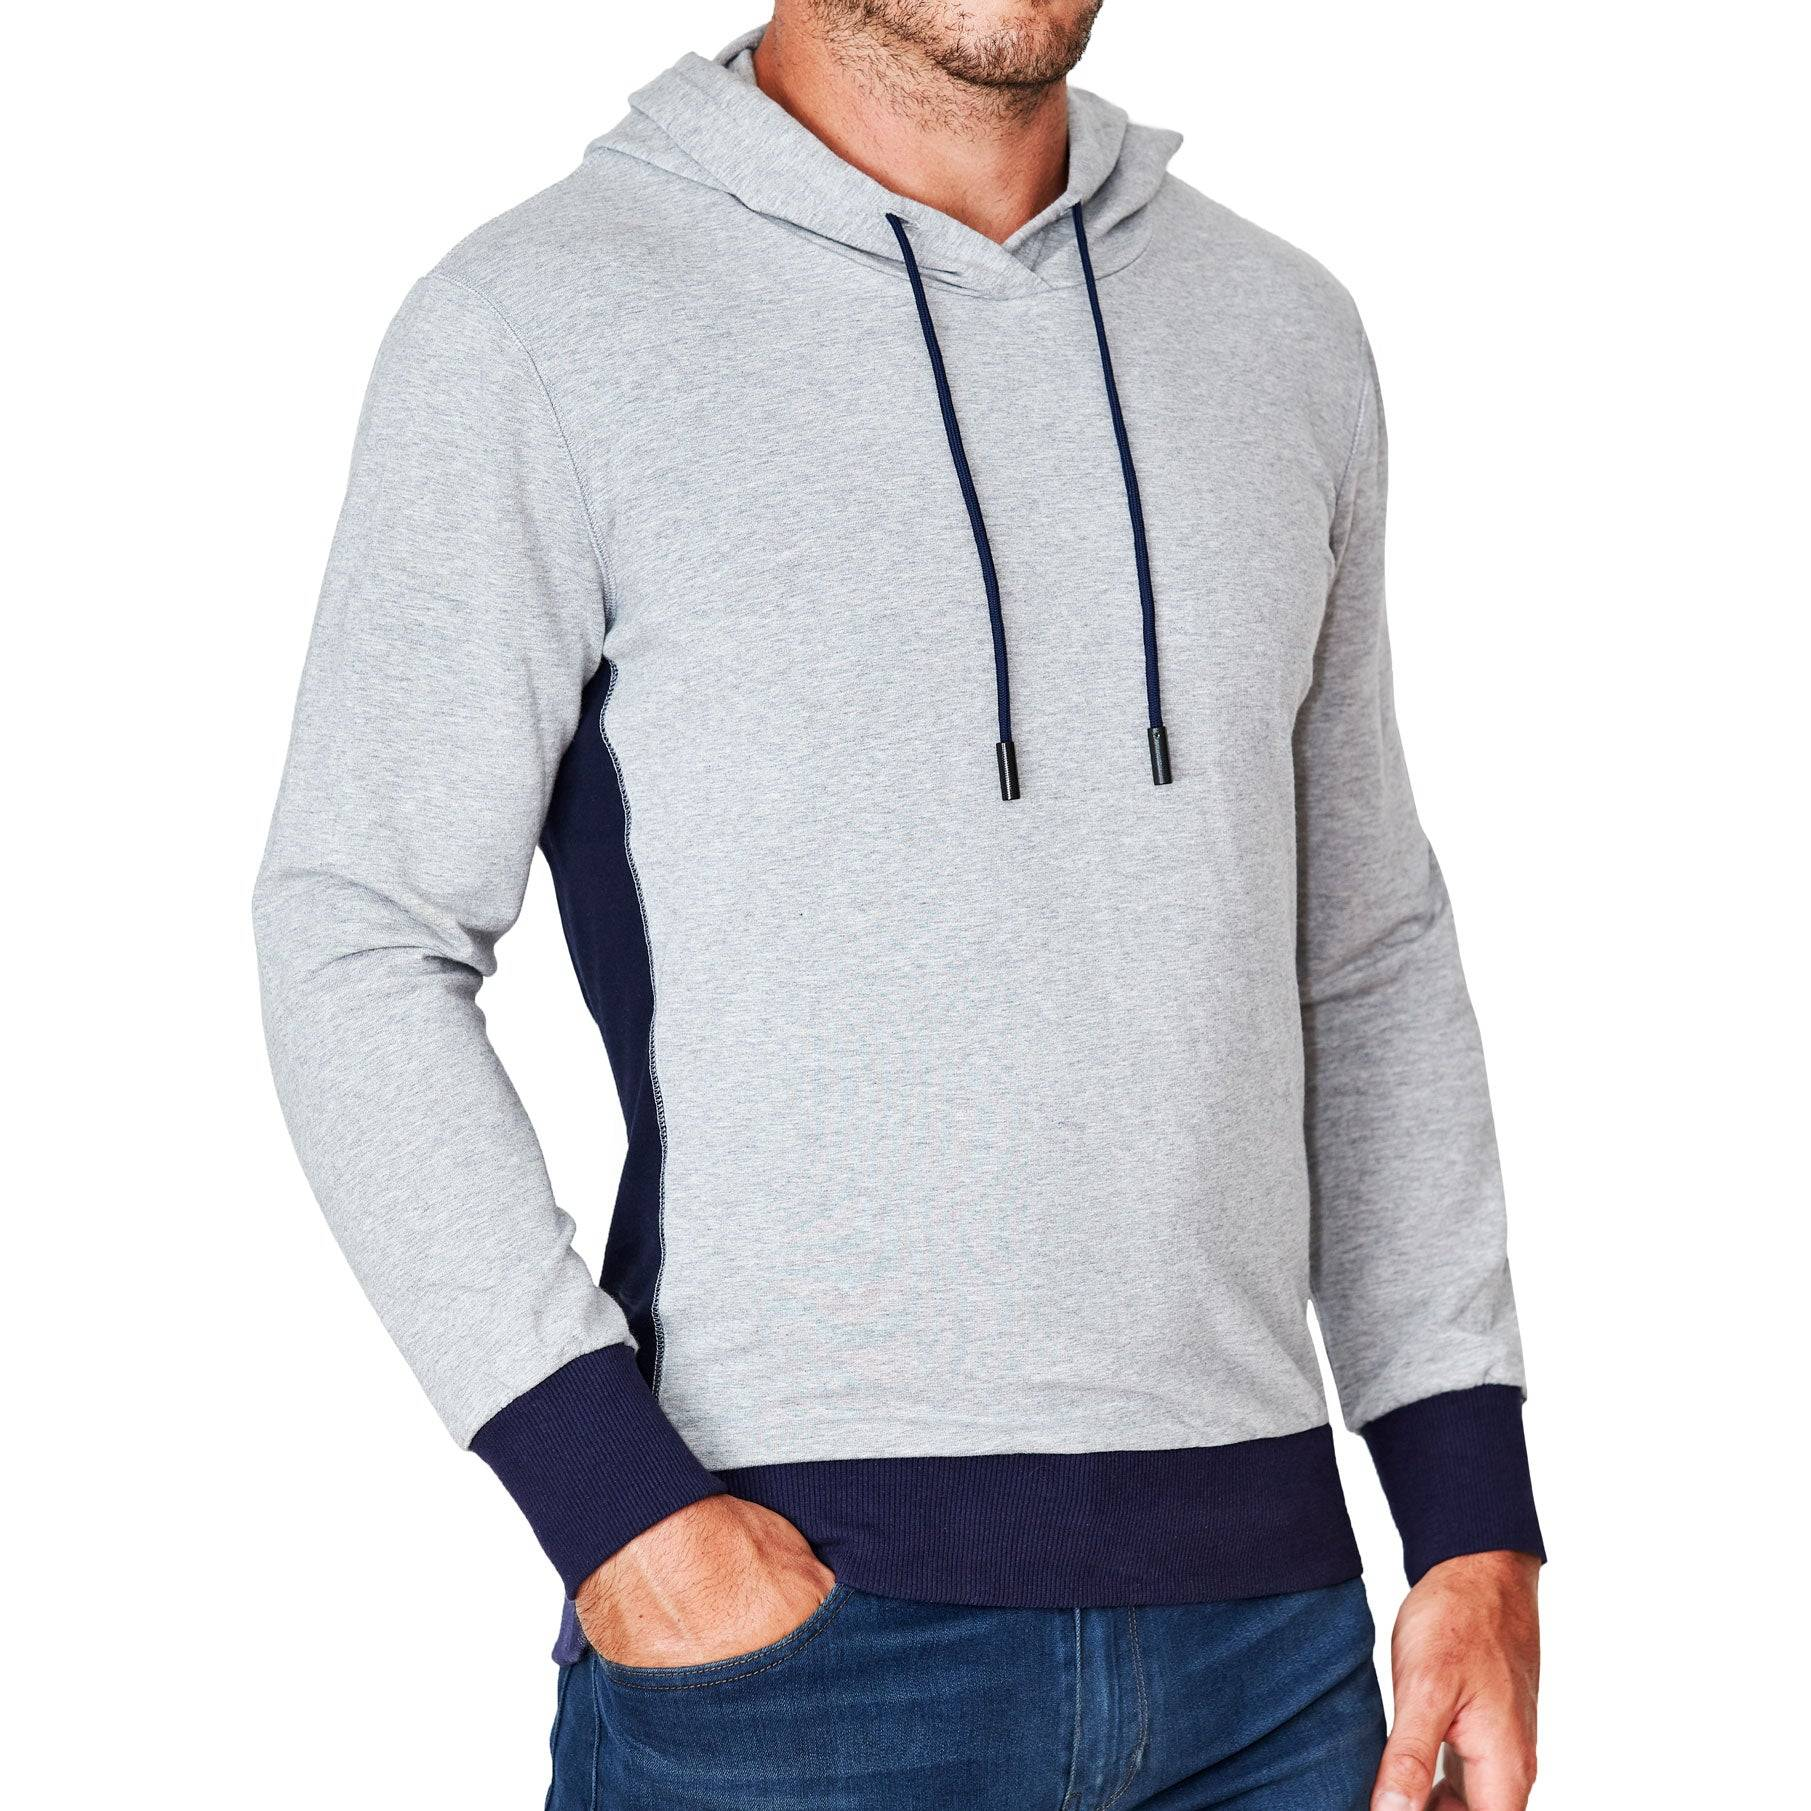 StateLiberty Grey Hoodie with Navy Accents